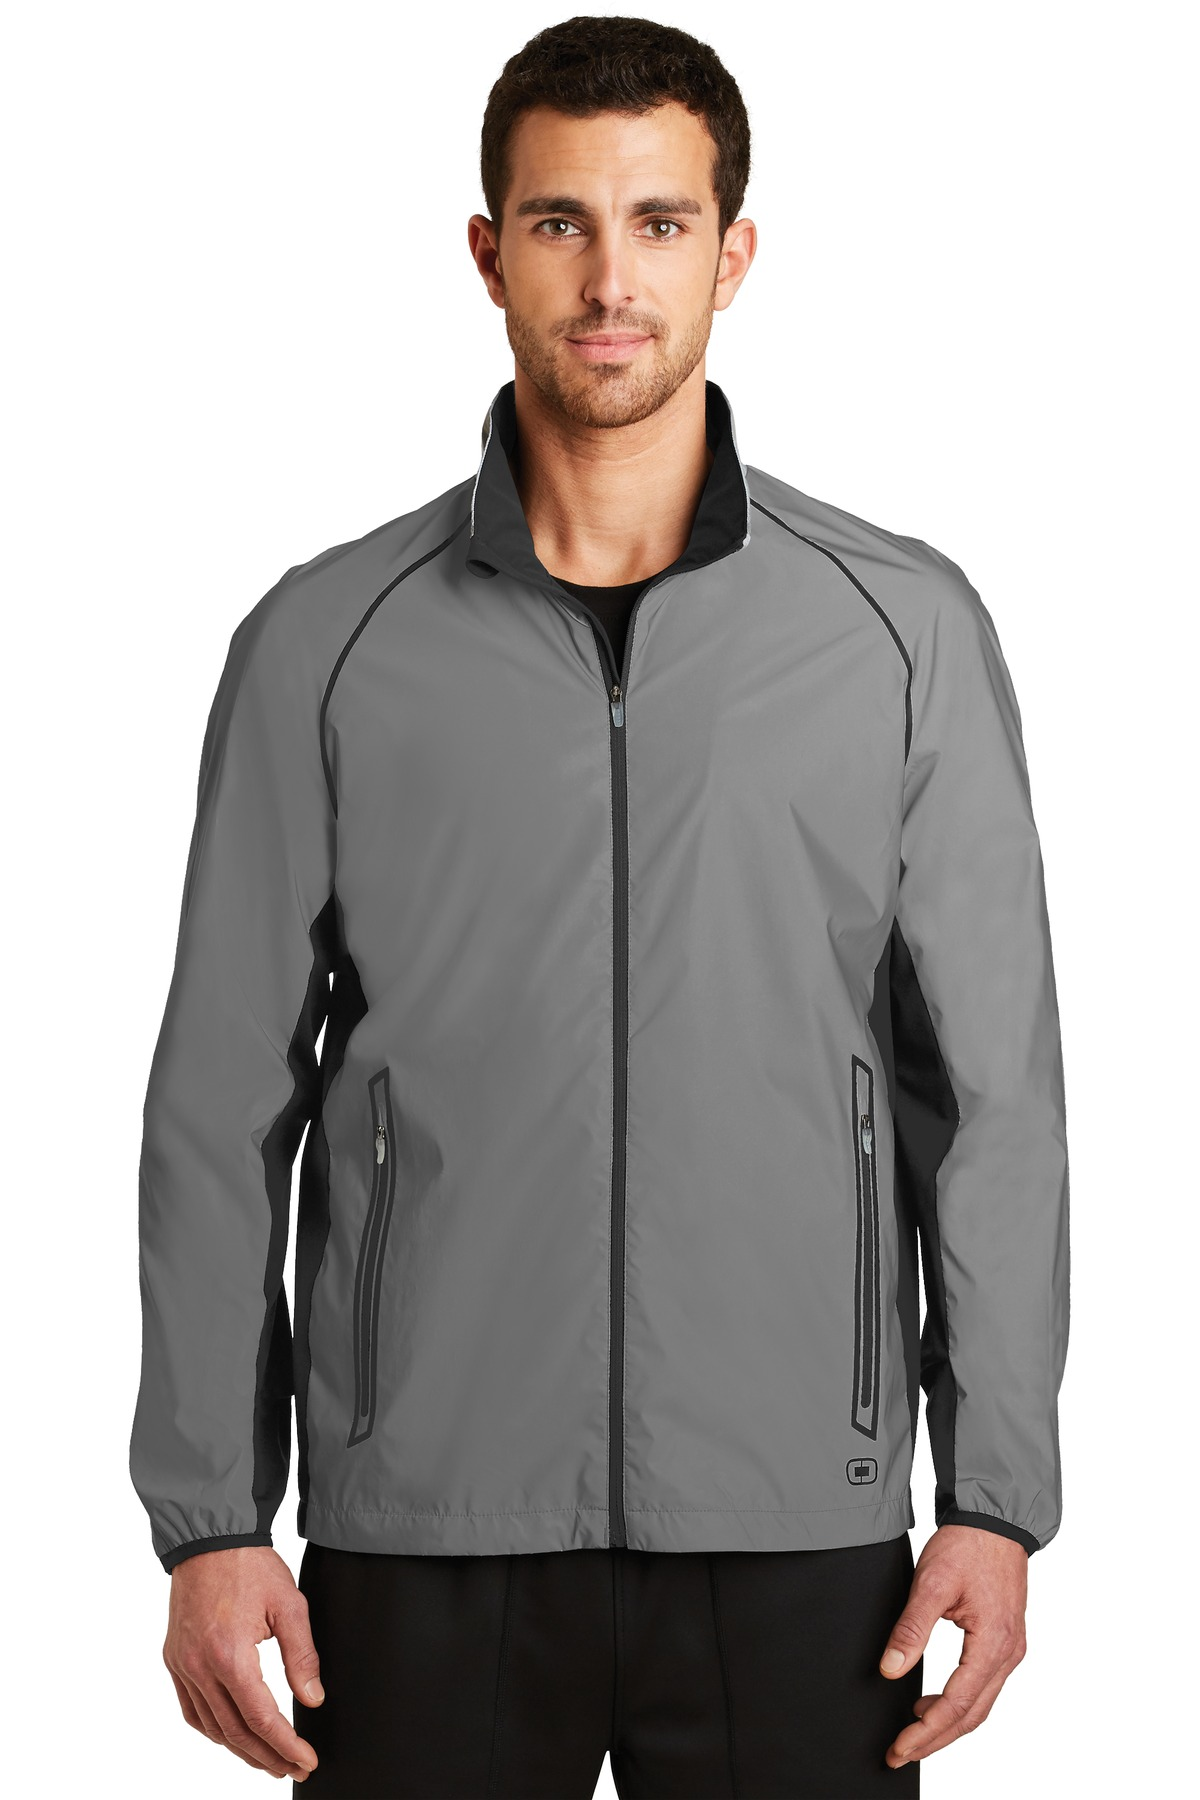 OGIO ®  ENDURANCE Flash Jacket. OE711 - Reflective/ Blacktop